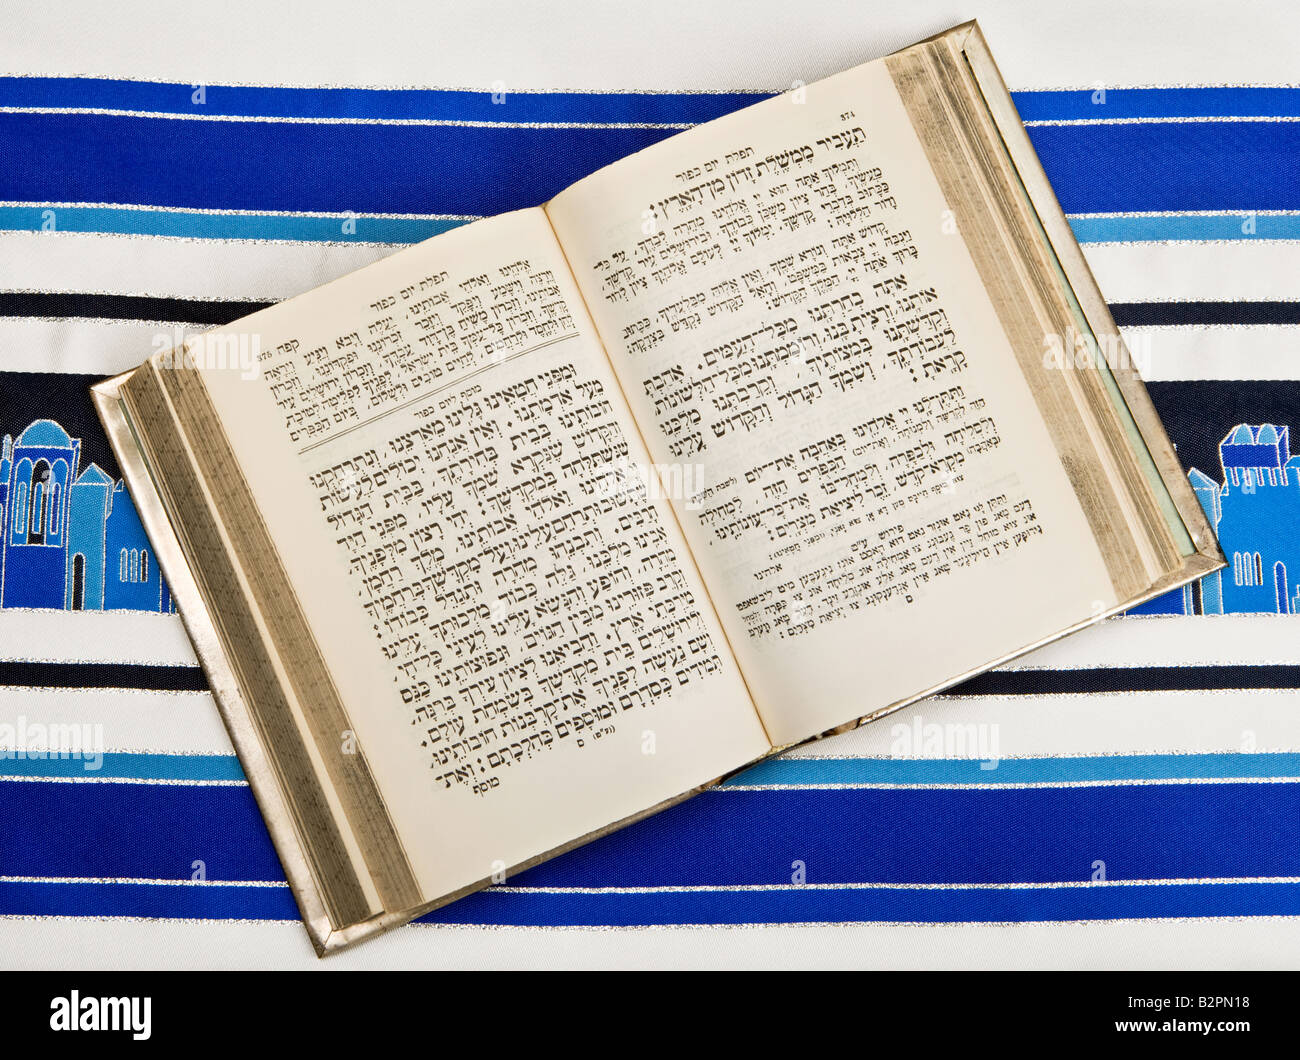 A Jewish prayer book, or Siddur, open and on top of a Jewish prayer shawl, or Tallit - Stock Image